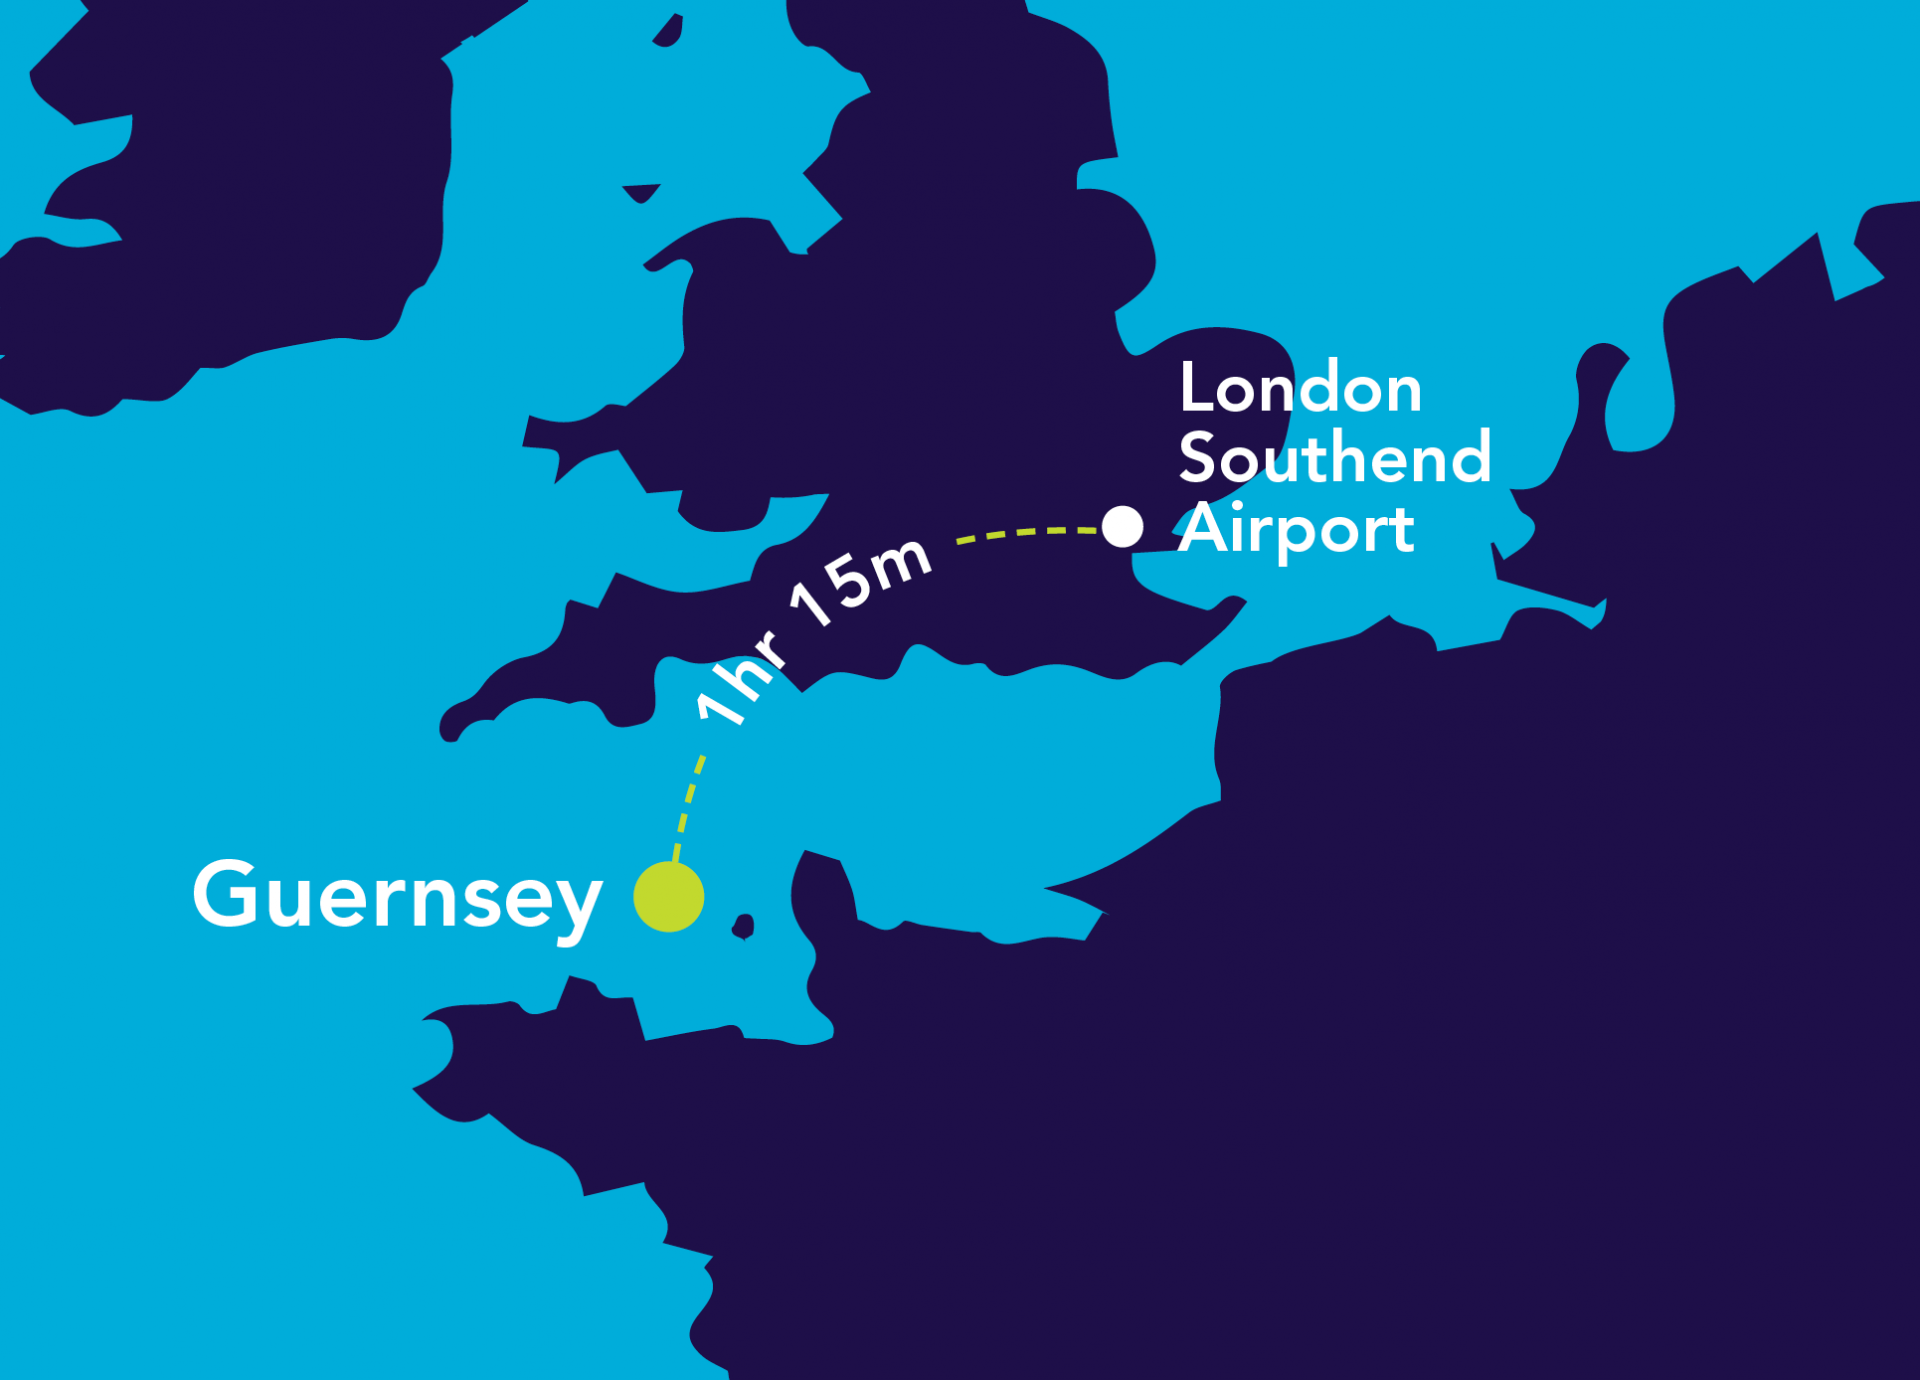 Image of map of London Southend Airport to Guernsey